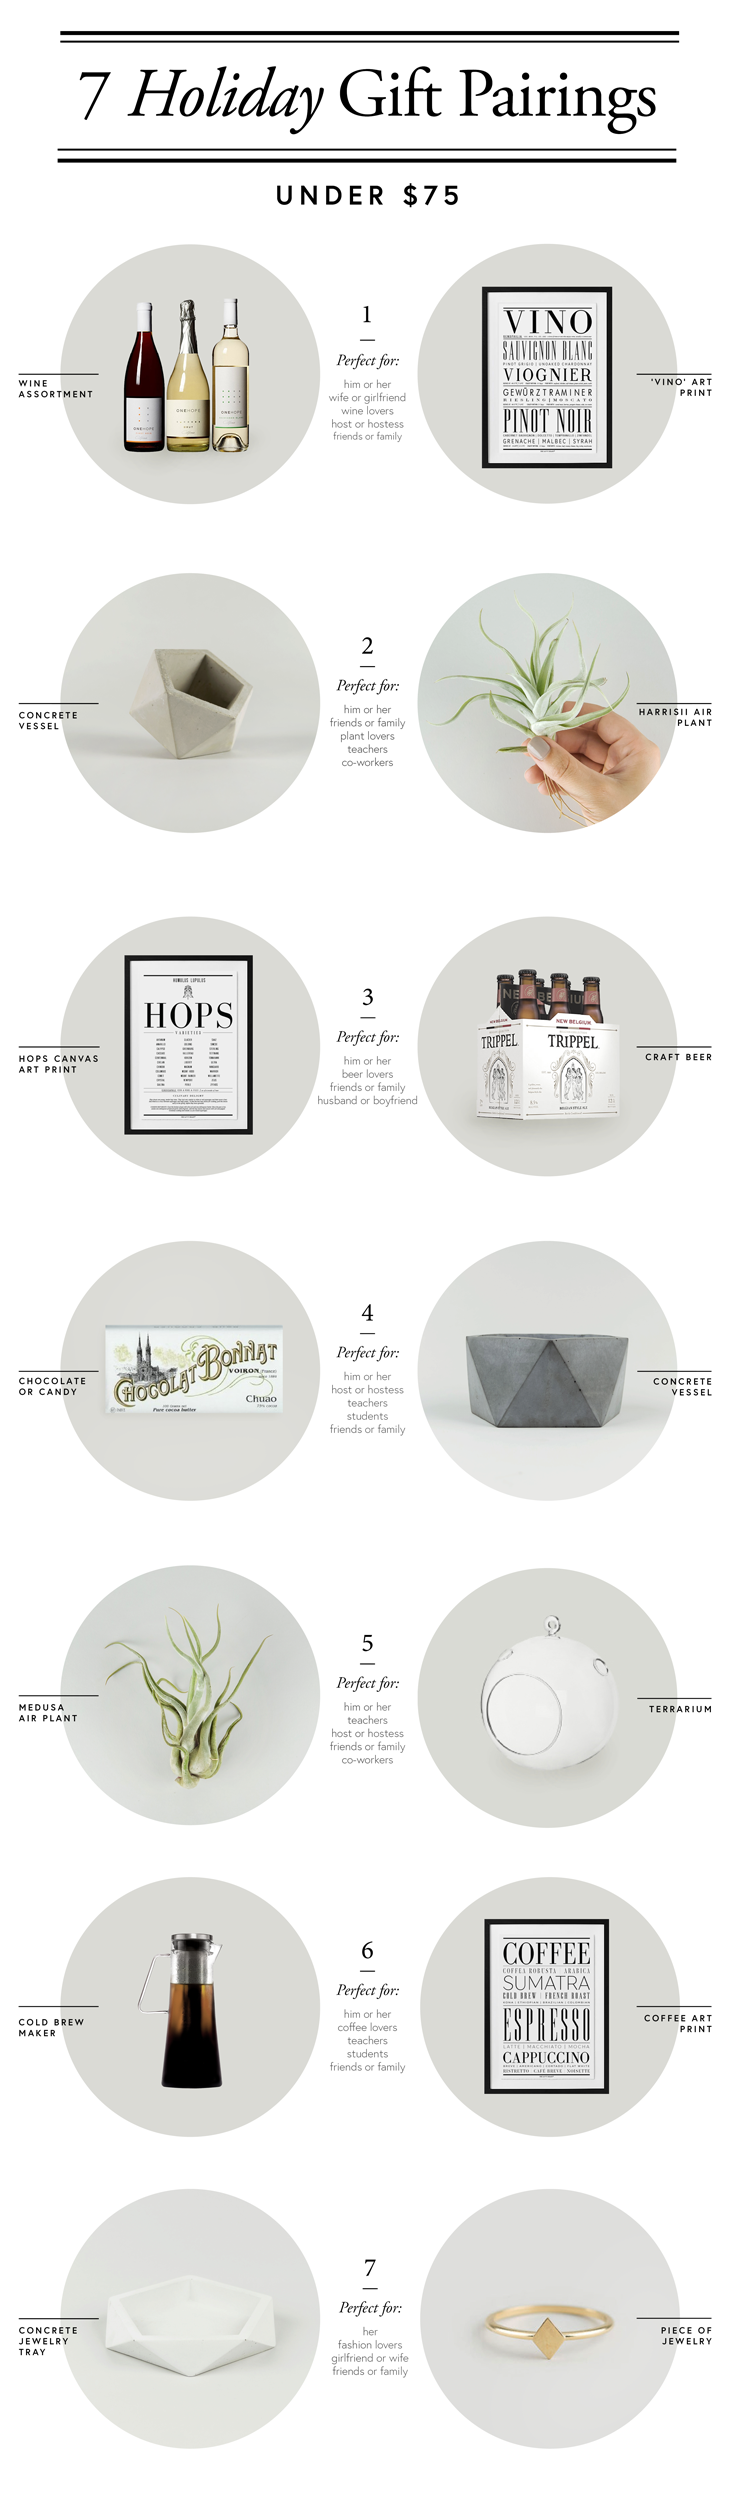 7 Holiday Gift Pairings for everyone on your list by The Savvy Heart